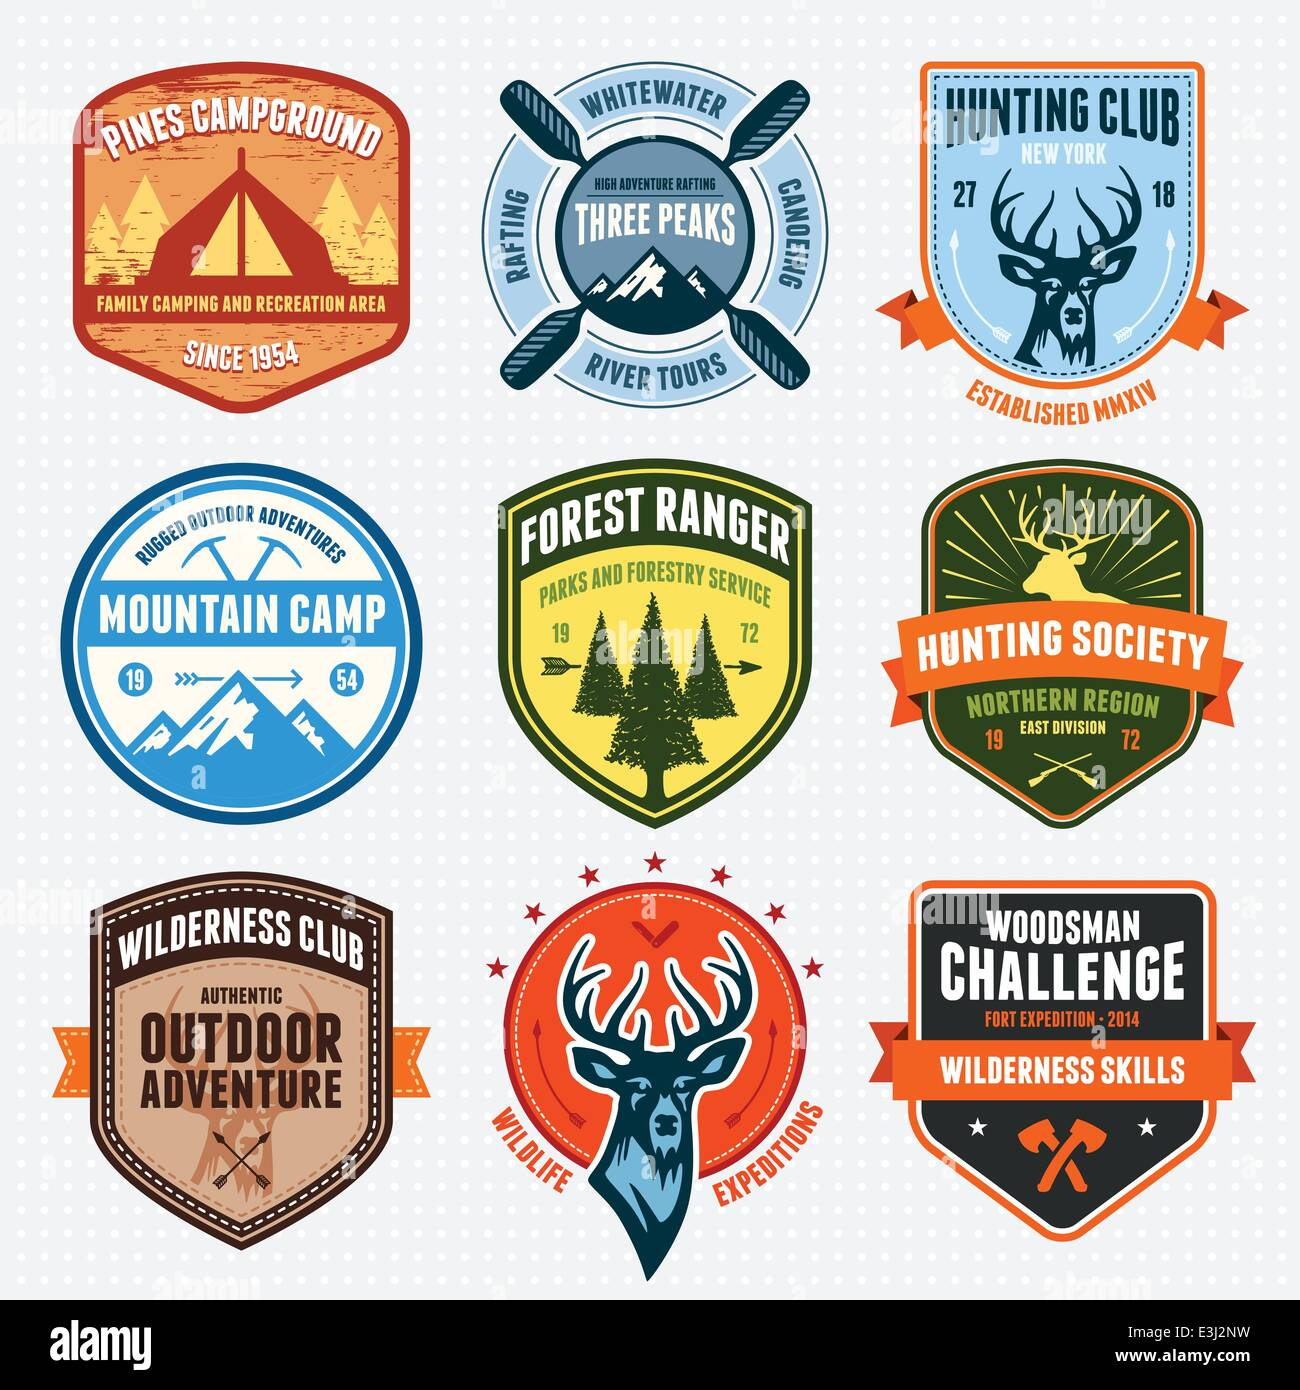 Set of outdoor adventure badges and hunting emblems - Stock Image